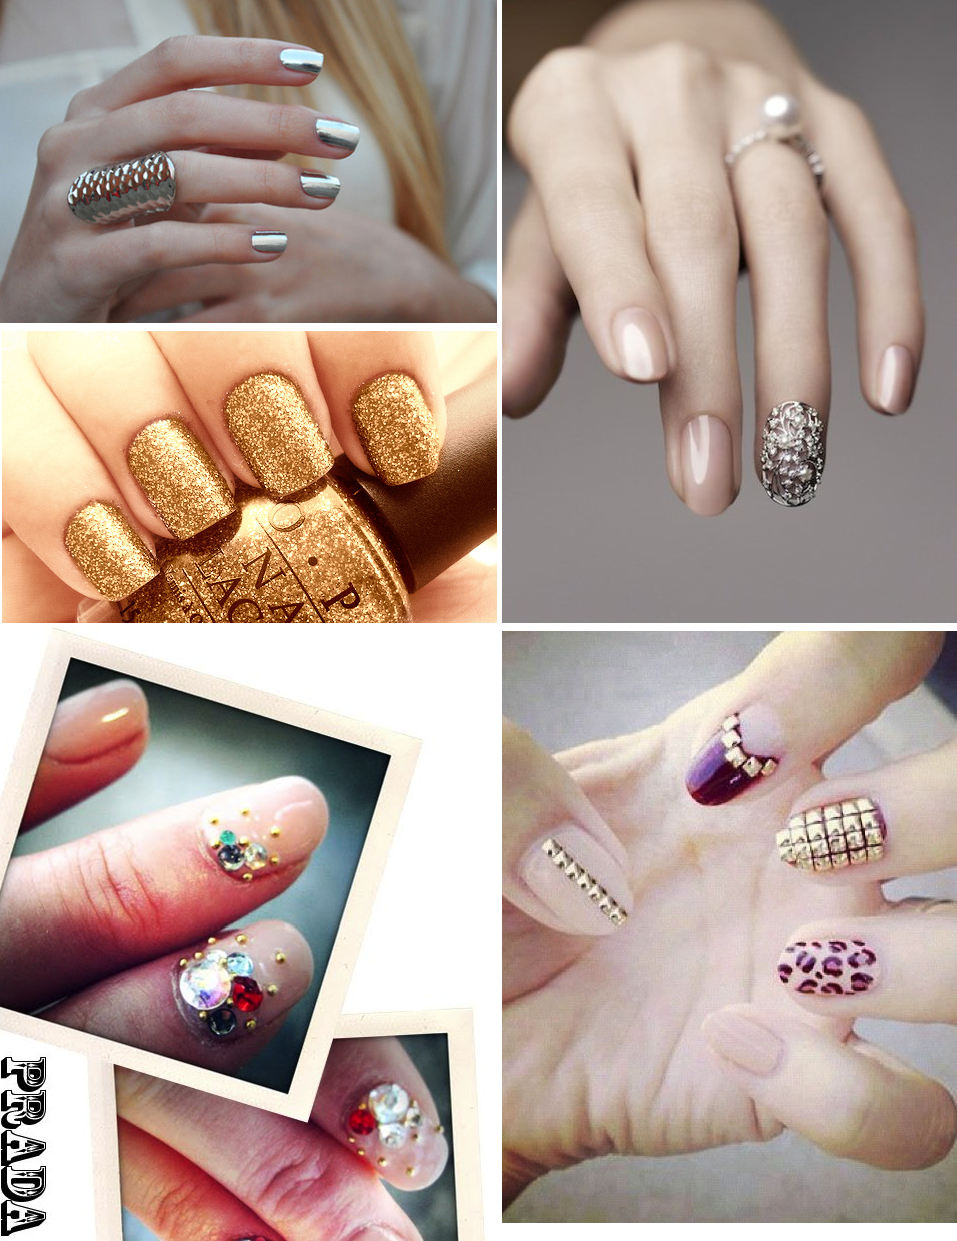 Awesome-wedding-day-manicures-for-beauty-loving-brides-glam-sparkly-metallic.original